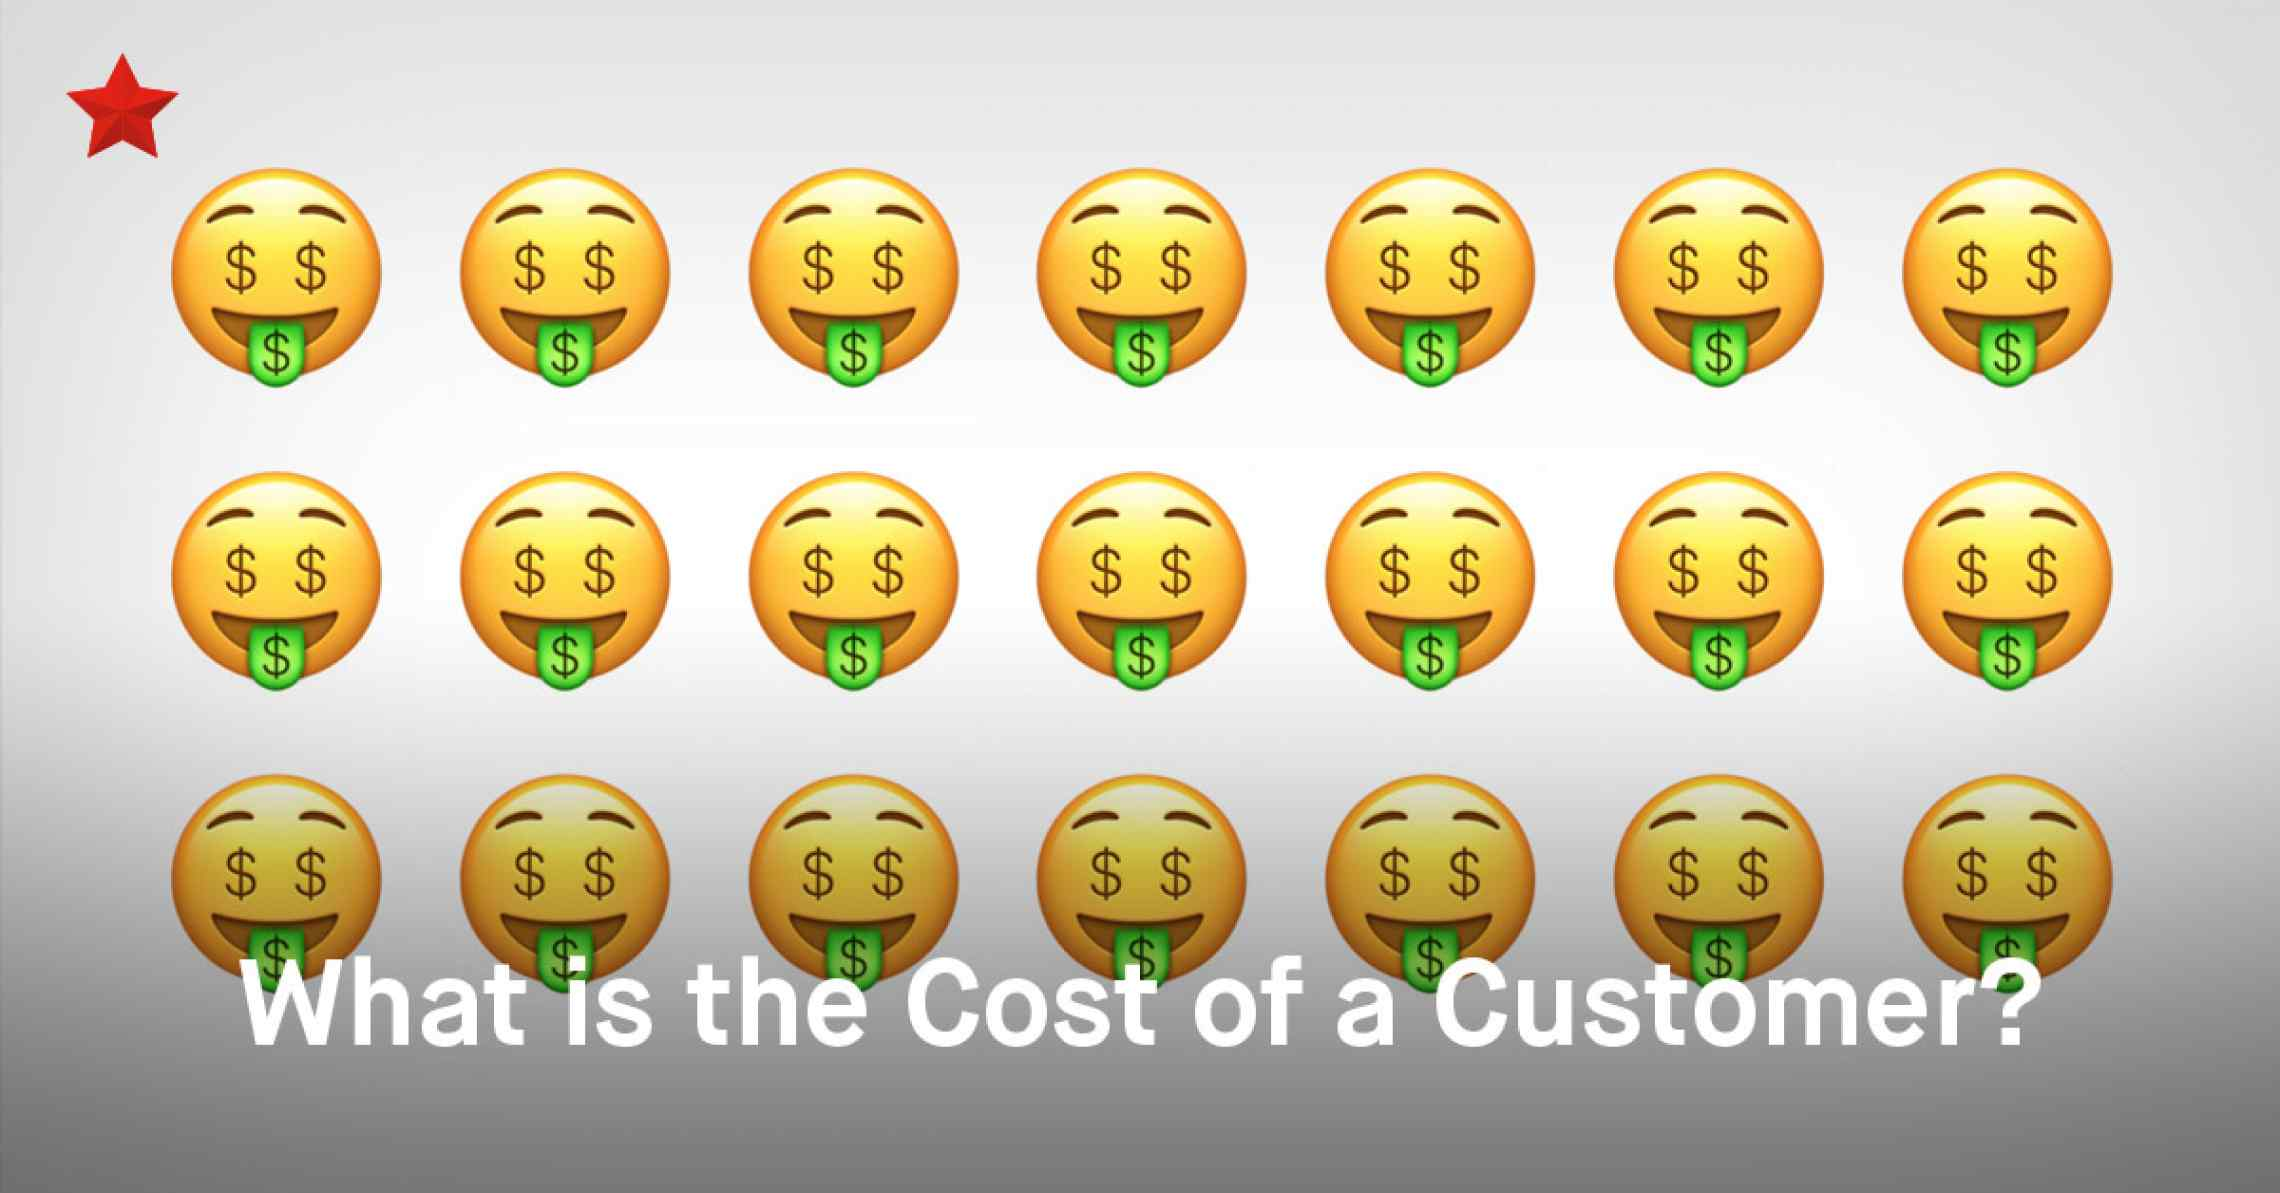 How Much Does a Customer Cost?